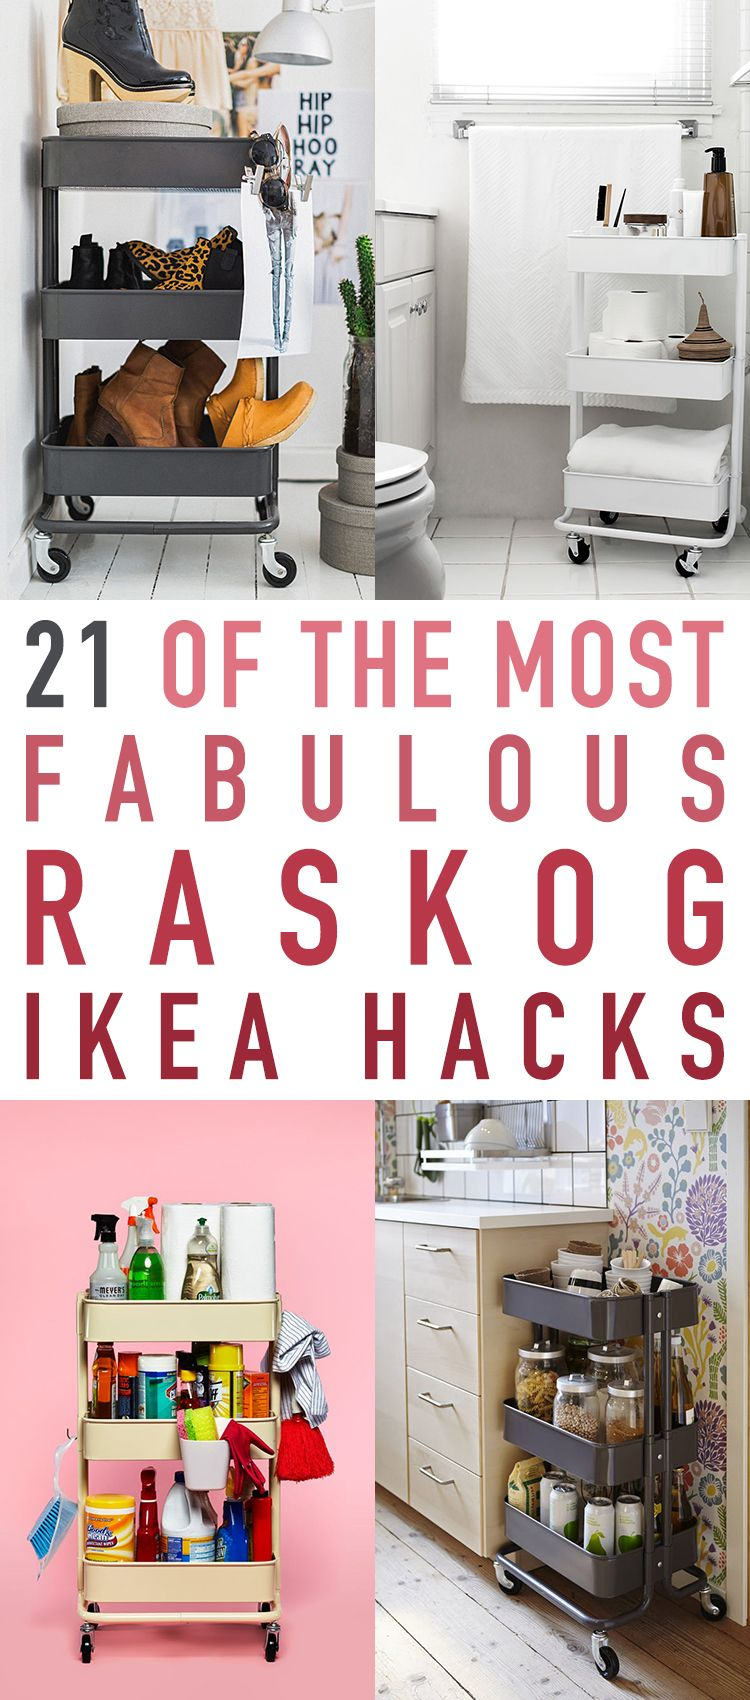 Kleine Küche Hacks 21 Of The Most Fabulous Raskog Ikea Hacks Kleine Küche